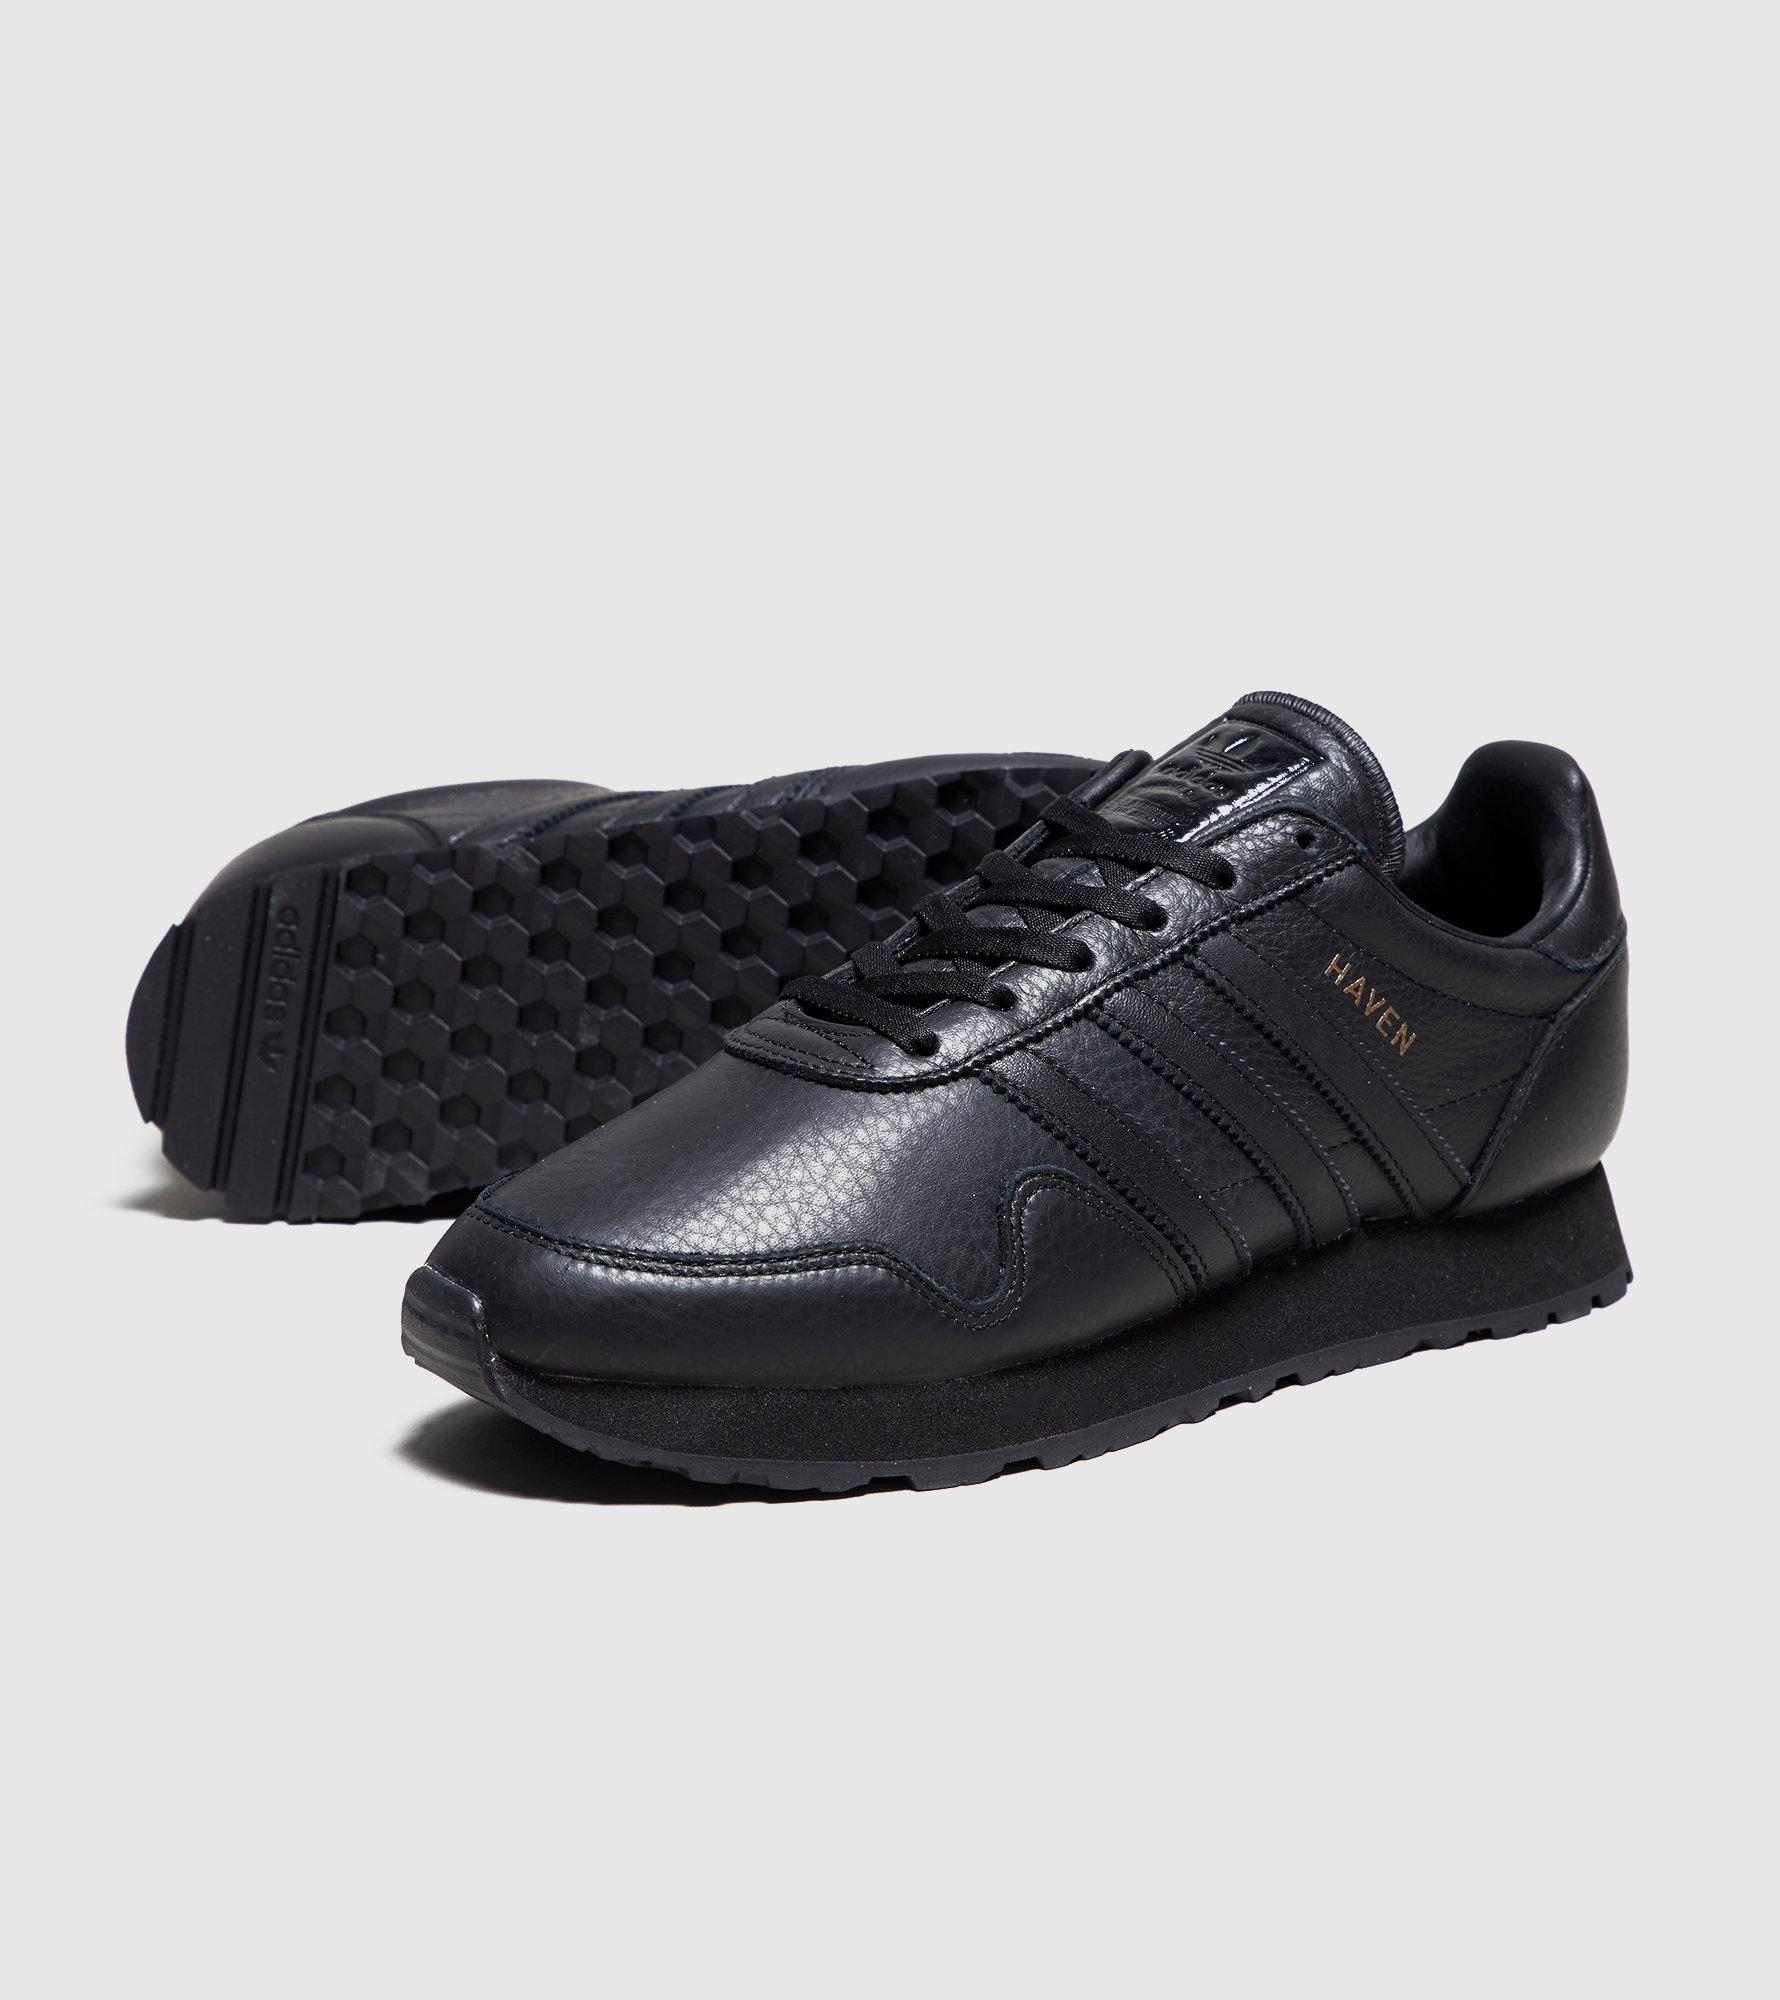 0eab29f6d9dce7 Lyst - adidas Originals Haven Leather in Black for Men